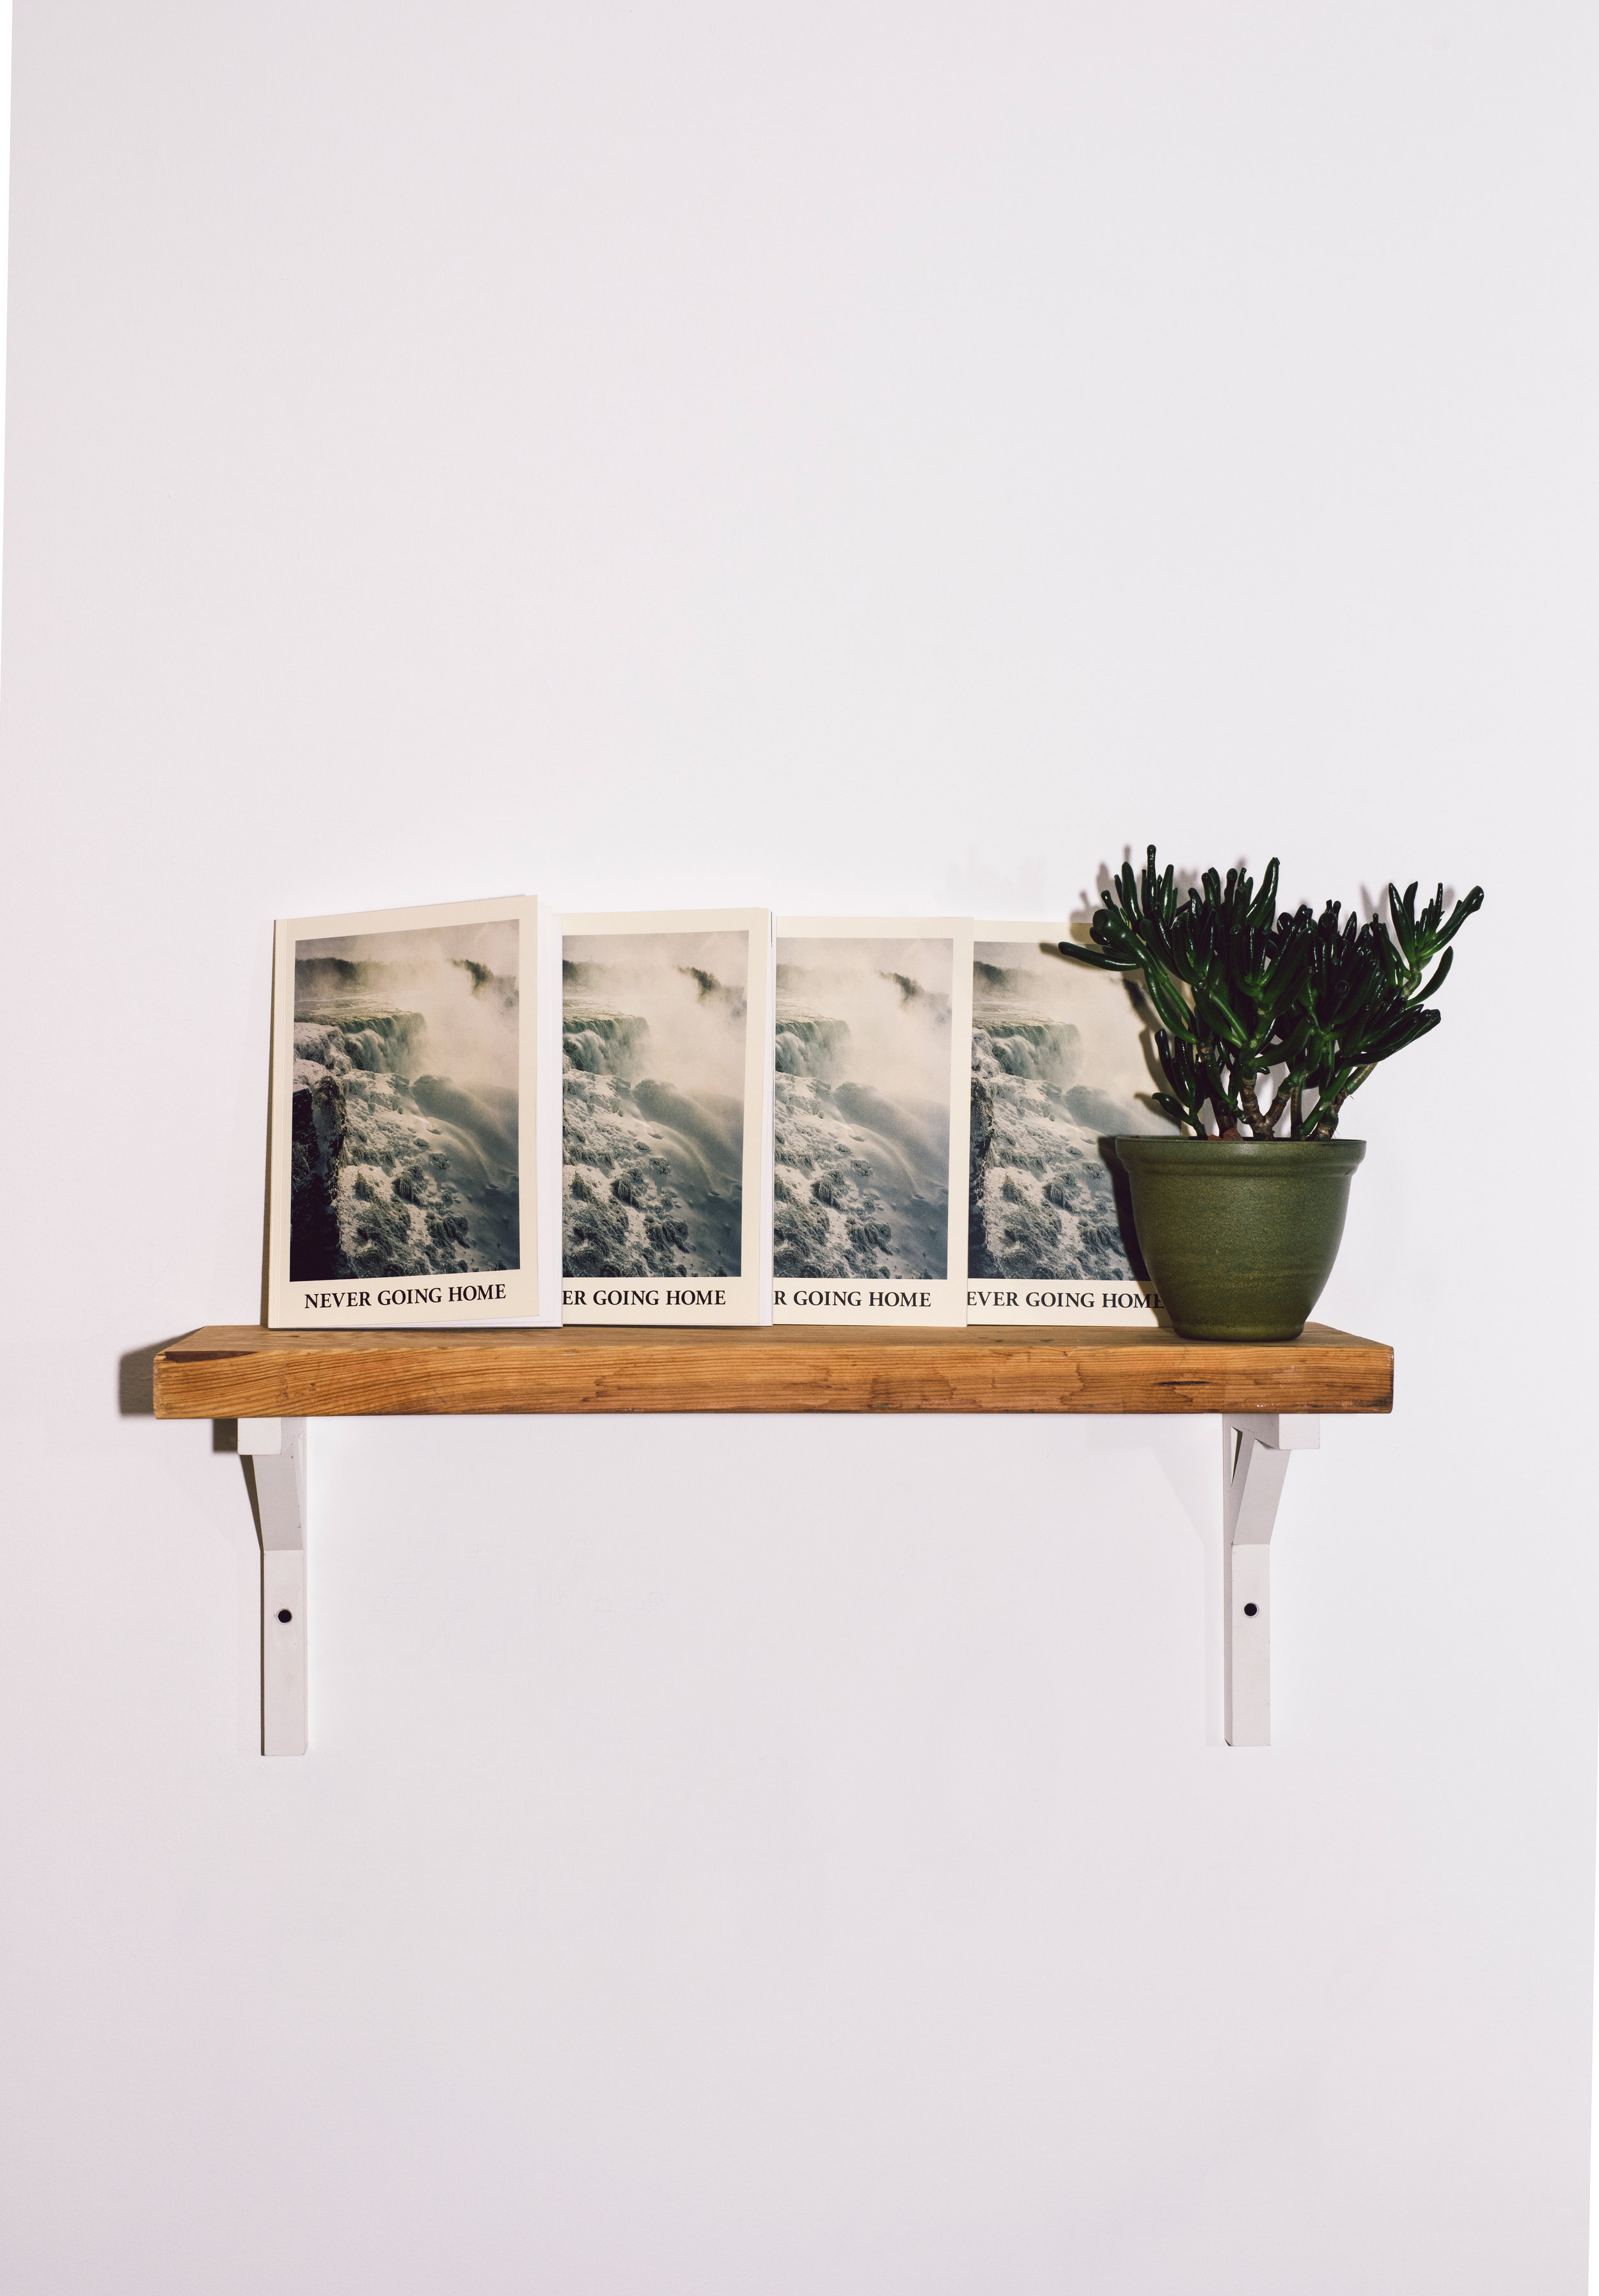 Ed. Varie Editions, Never Going Home, with editors Katie McCurdy, Kathy Lo, photo courtesy of Katie McCurdy